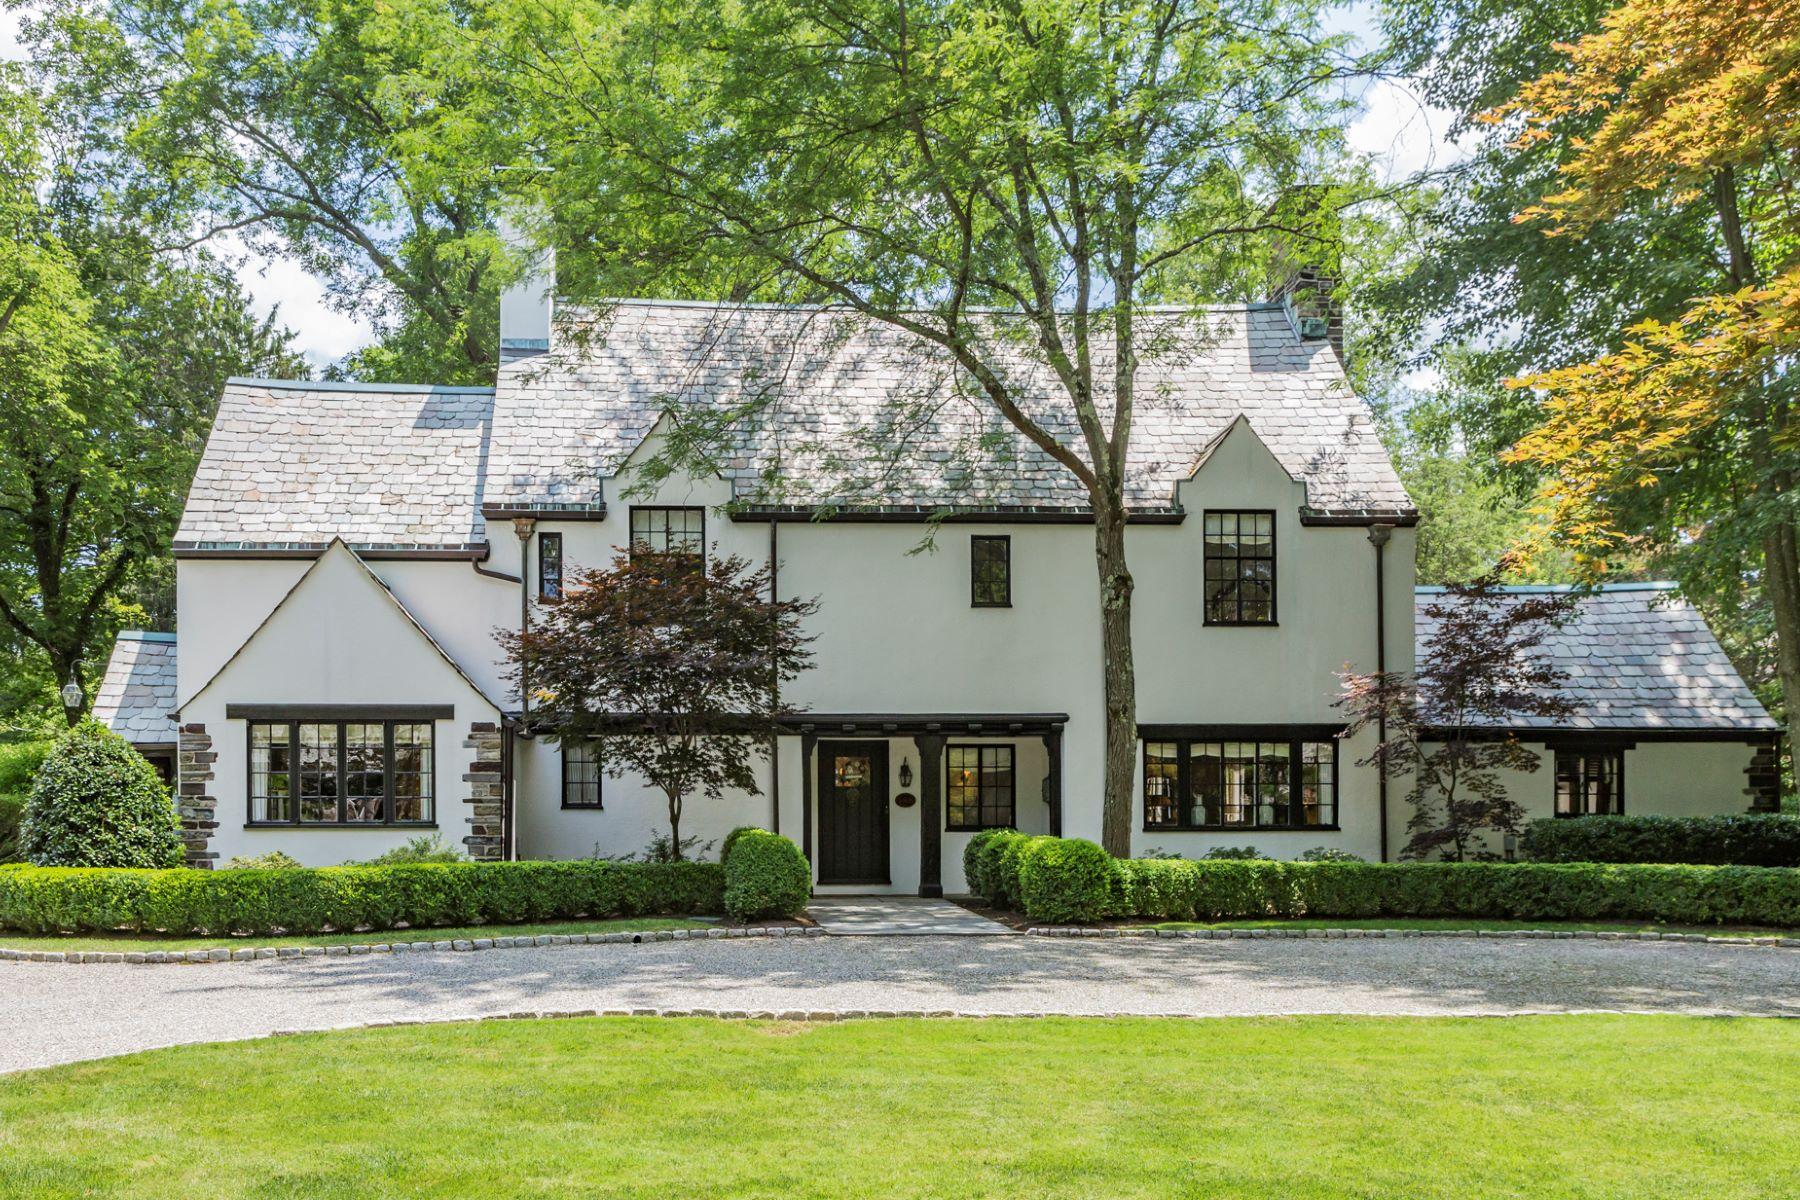 Maison unifamiliale pour l Vente à It Doesn't Get Much Better 148 Hodge Road, Princeton, New Jersey 08540 États-Unis